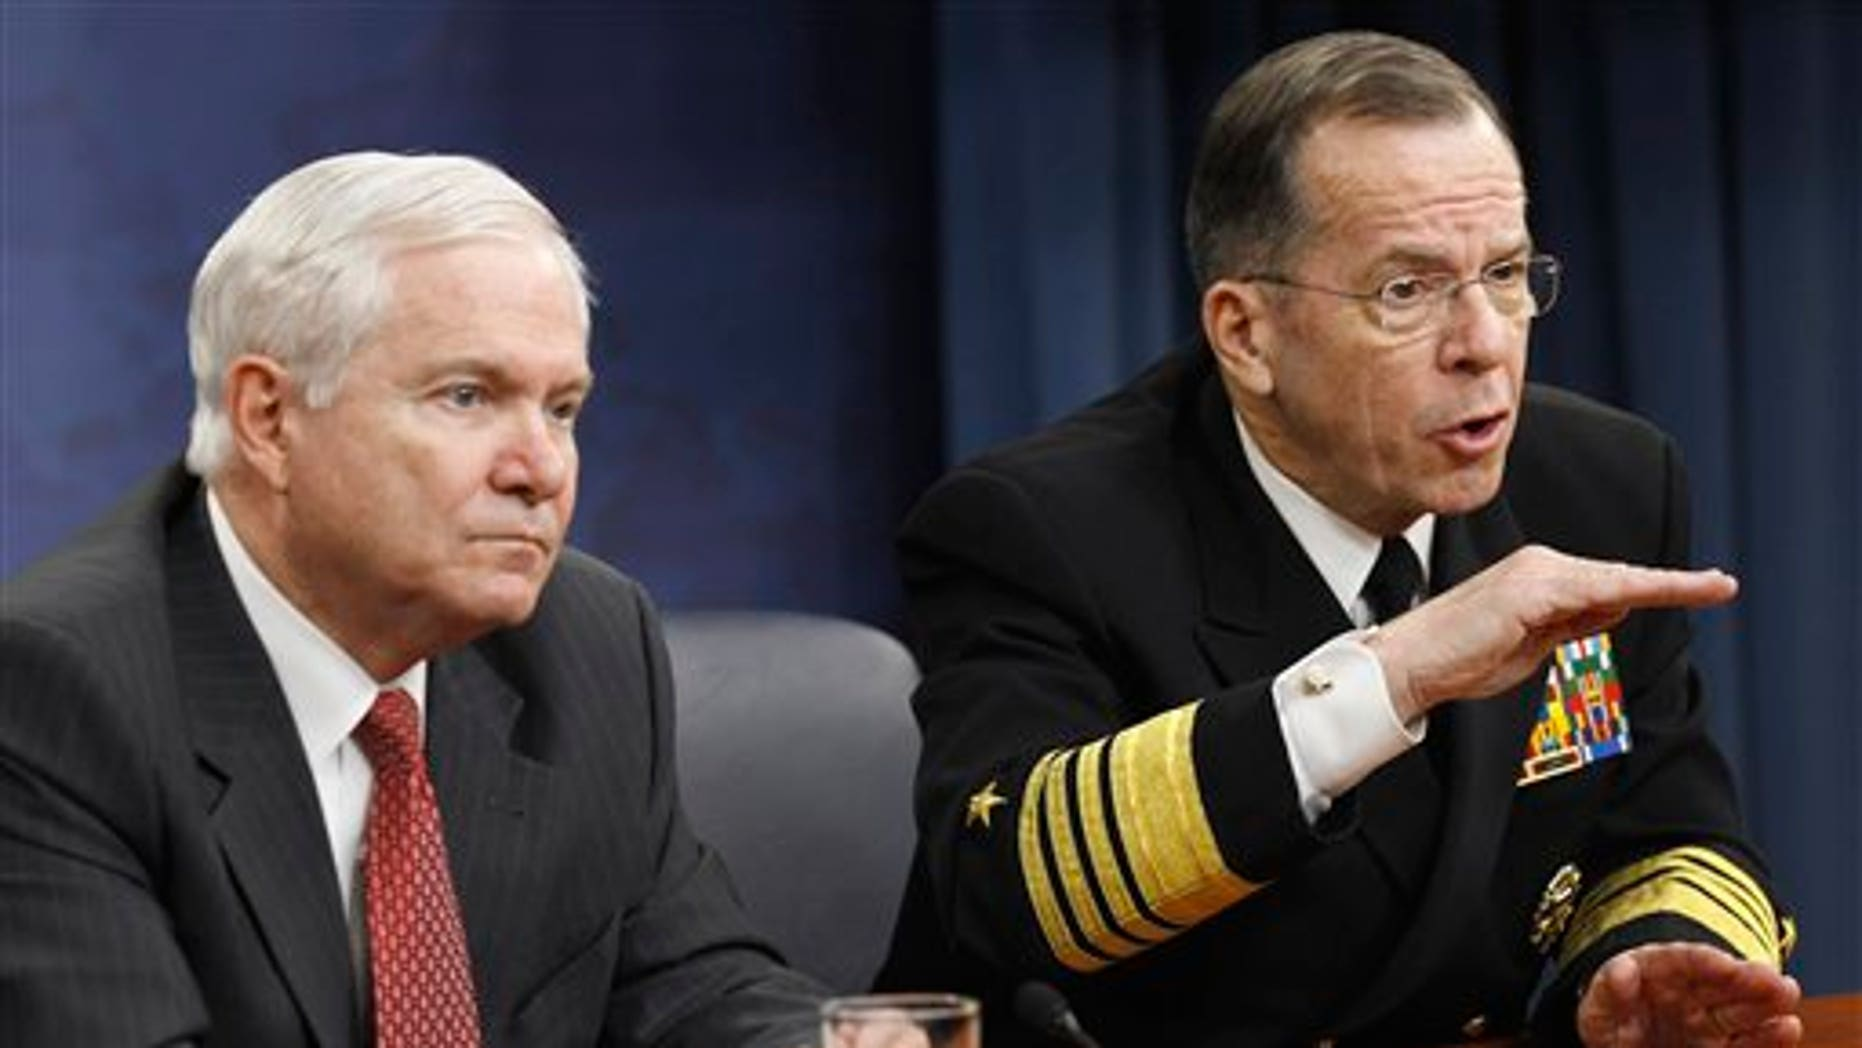 March. 1: Defense Secretary Robert Gates, left, and Joint Chiefs Chairman Adm. Mike Mullen take part in a news conference at the Pentagon. The Pentagon has confirmed that the Libyan government has used air strikes against rebel forces, a finding that bolsters those calling for a U.S. and NATO no-fly zone over the embattled region.